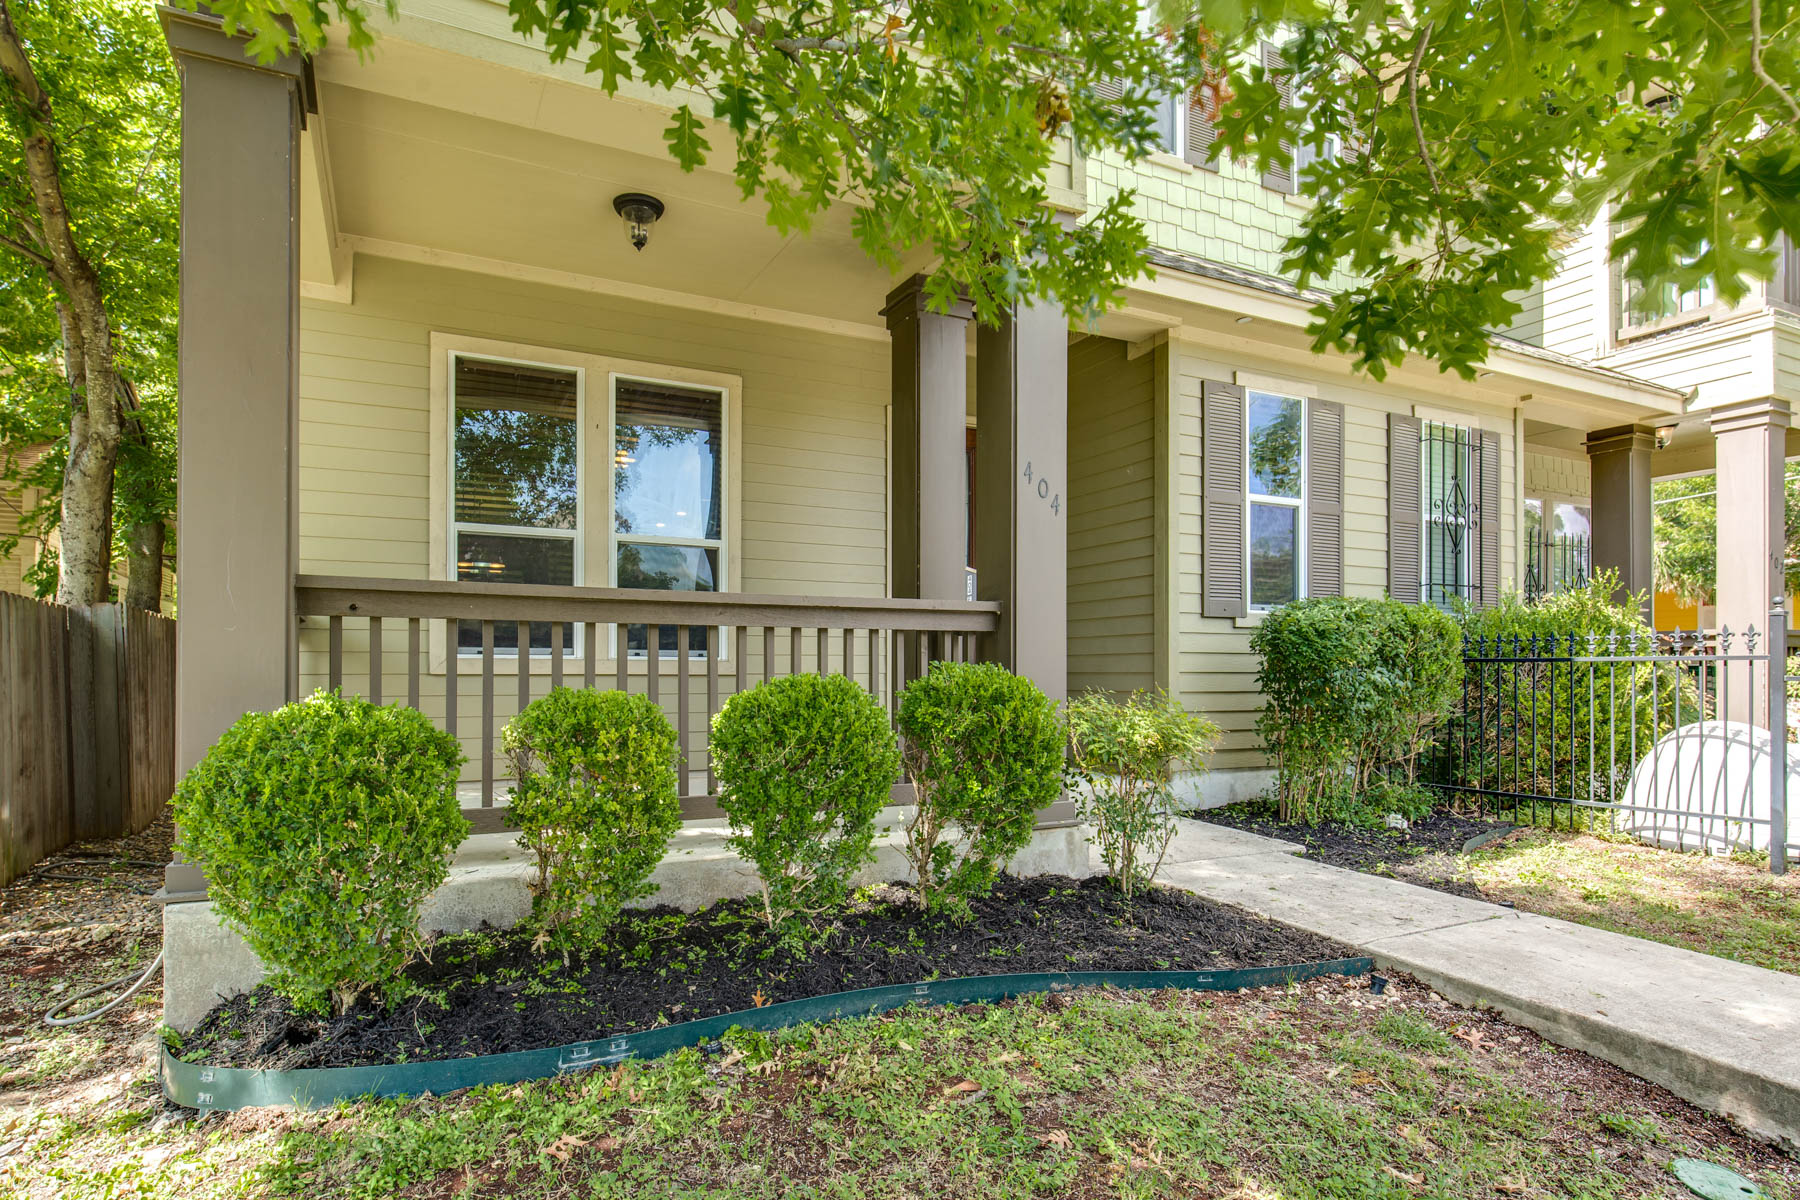 Townhouse for Sale at Urban Townhouse in Tobin Hill 404 E Courtland Pl 404 San Antonio, Texas 78212 United States